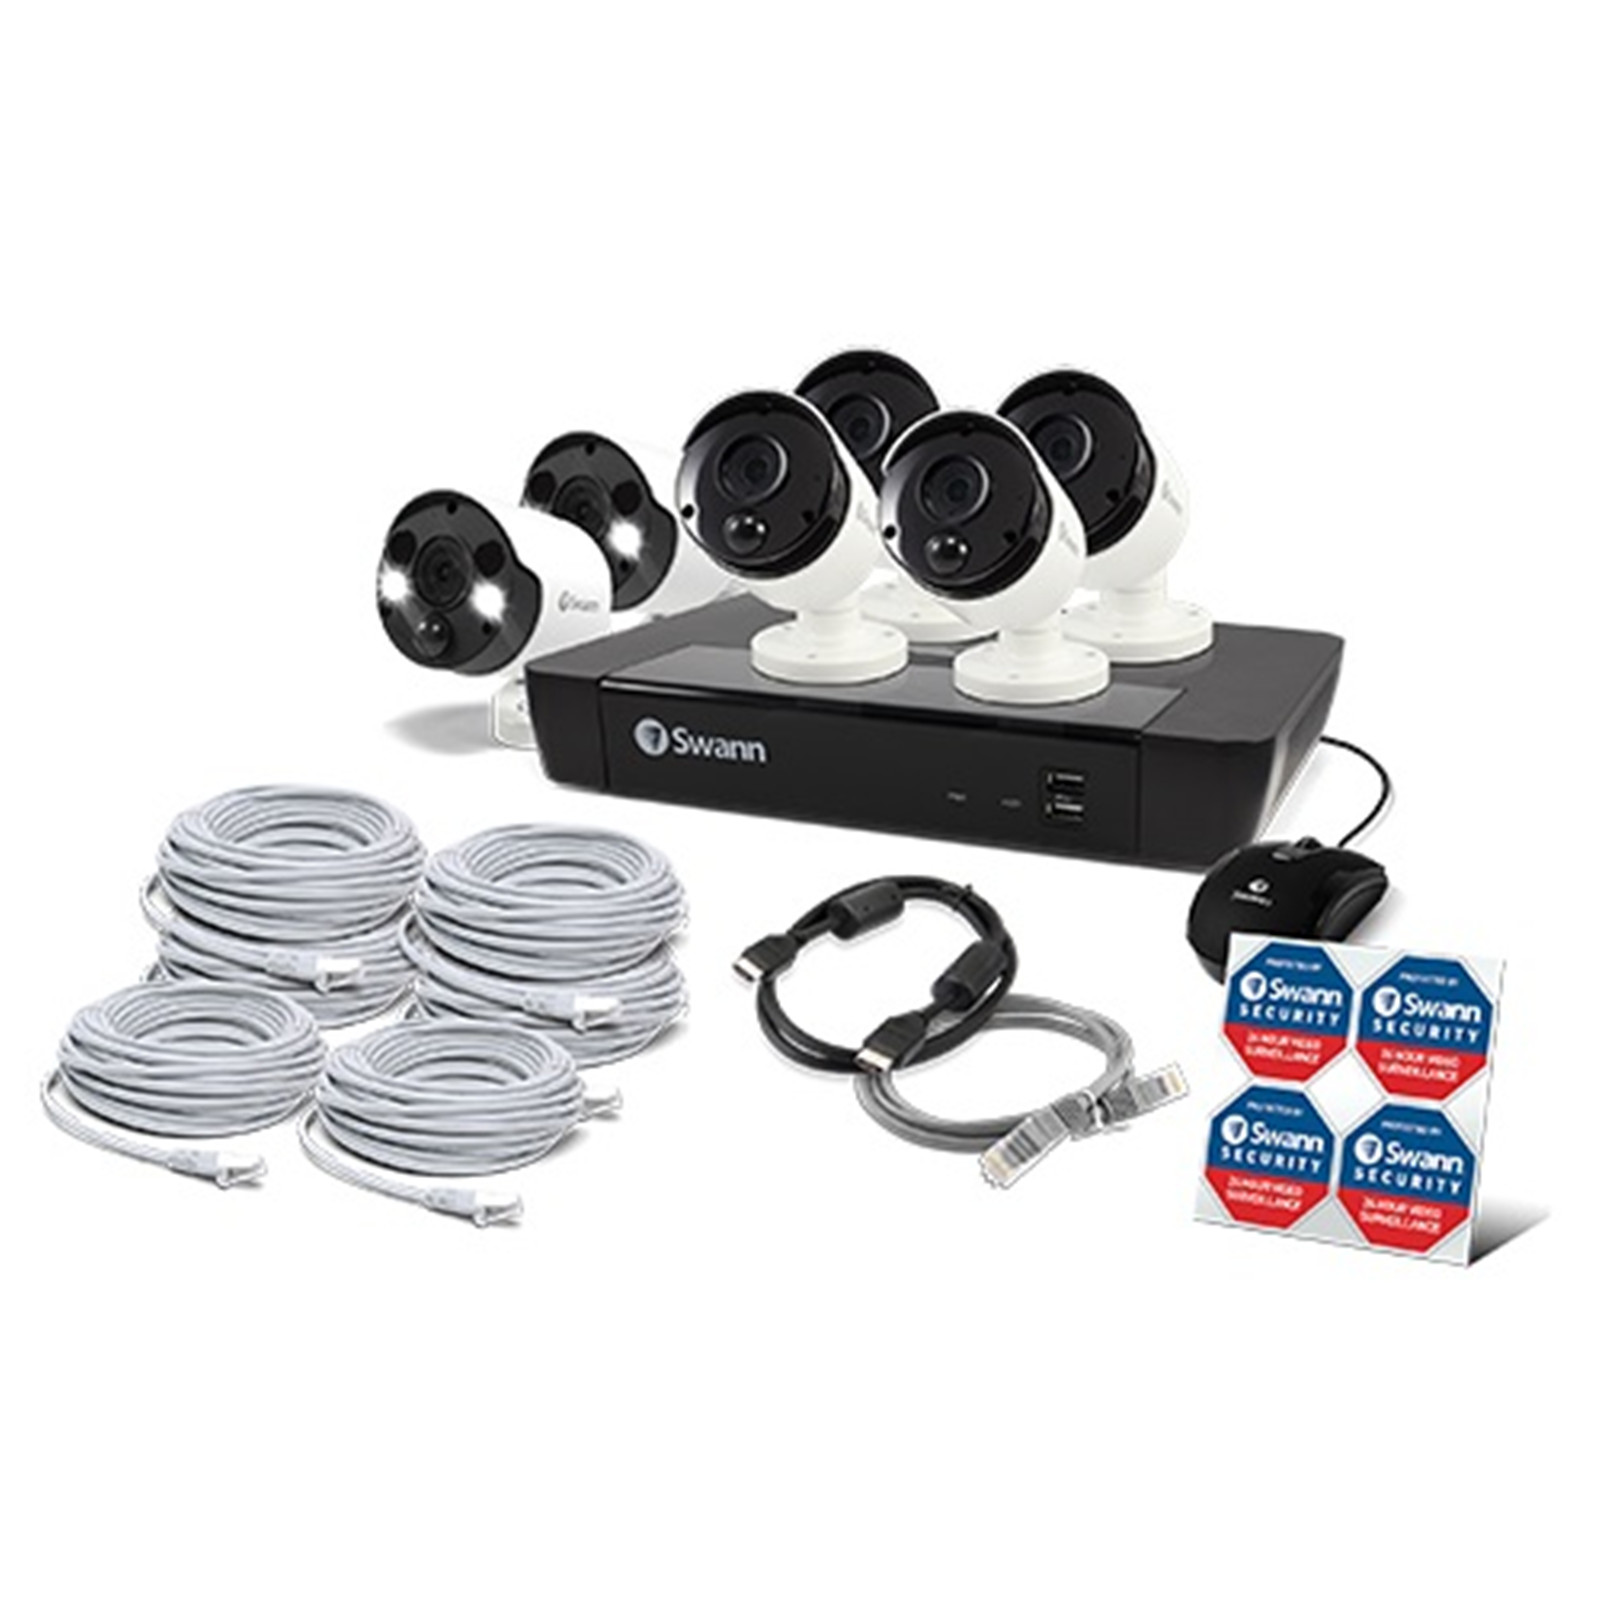 Buy the Swann 8 Channel Security System: 8MP/4K Ultra HD NVR